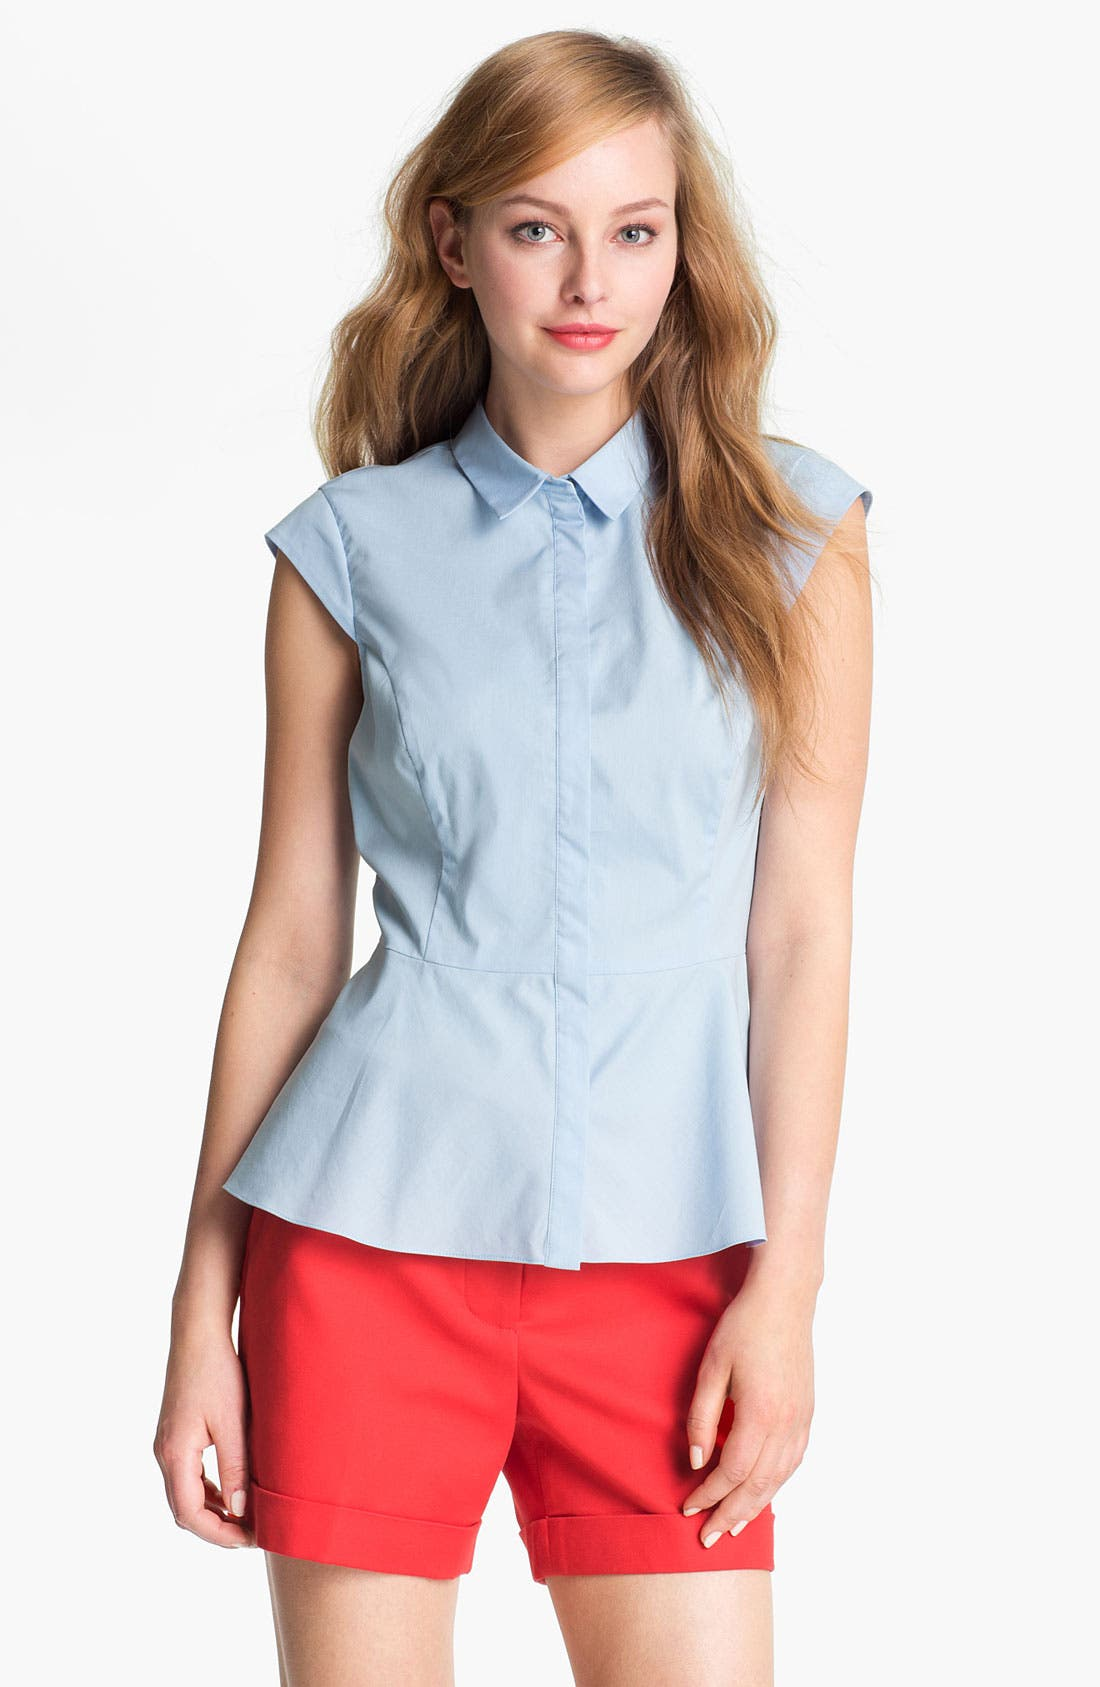 Alternate Image 1 Selected - Vince Camuto Cap Sleeve Peplum Blouse